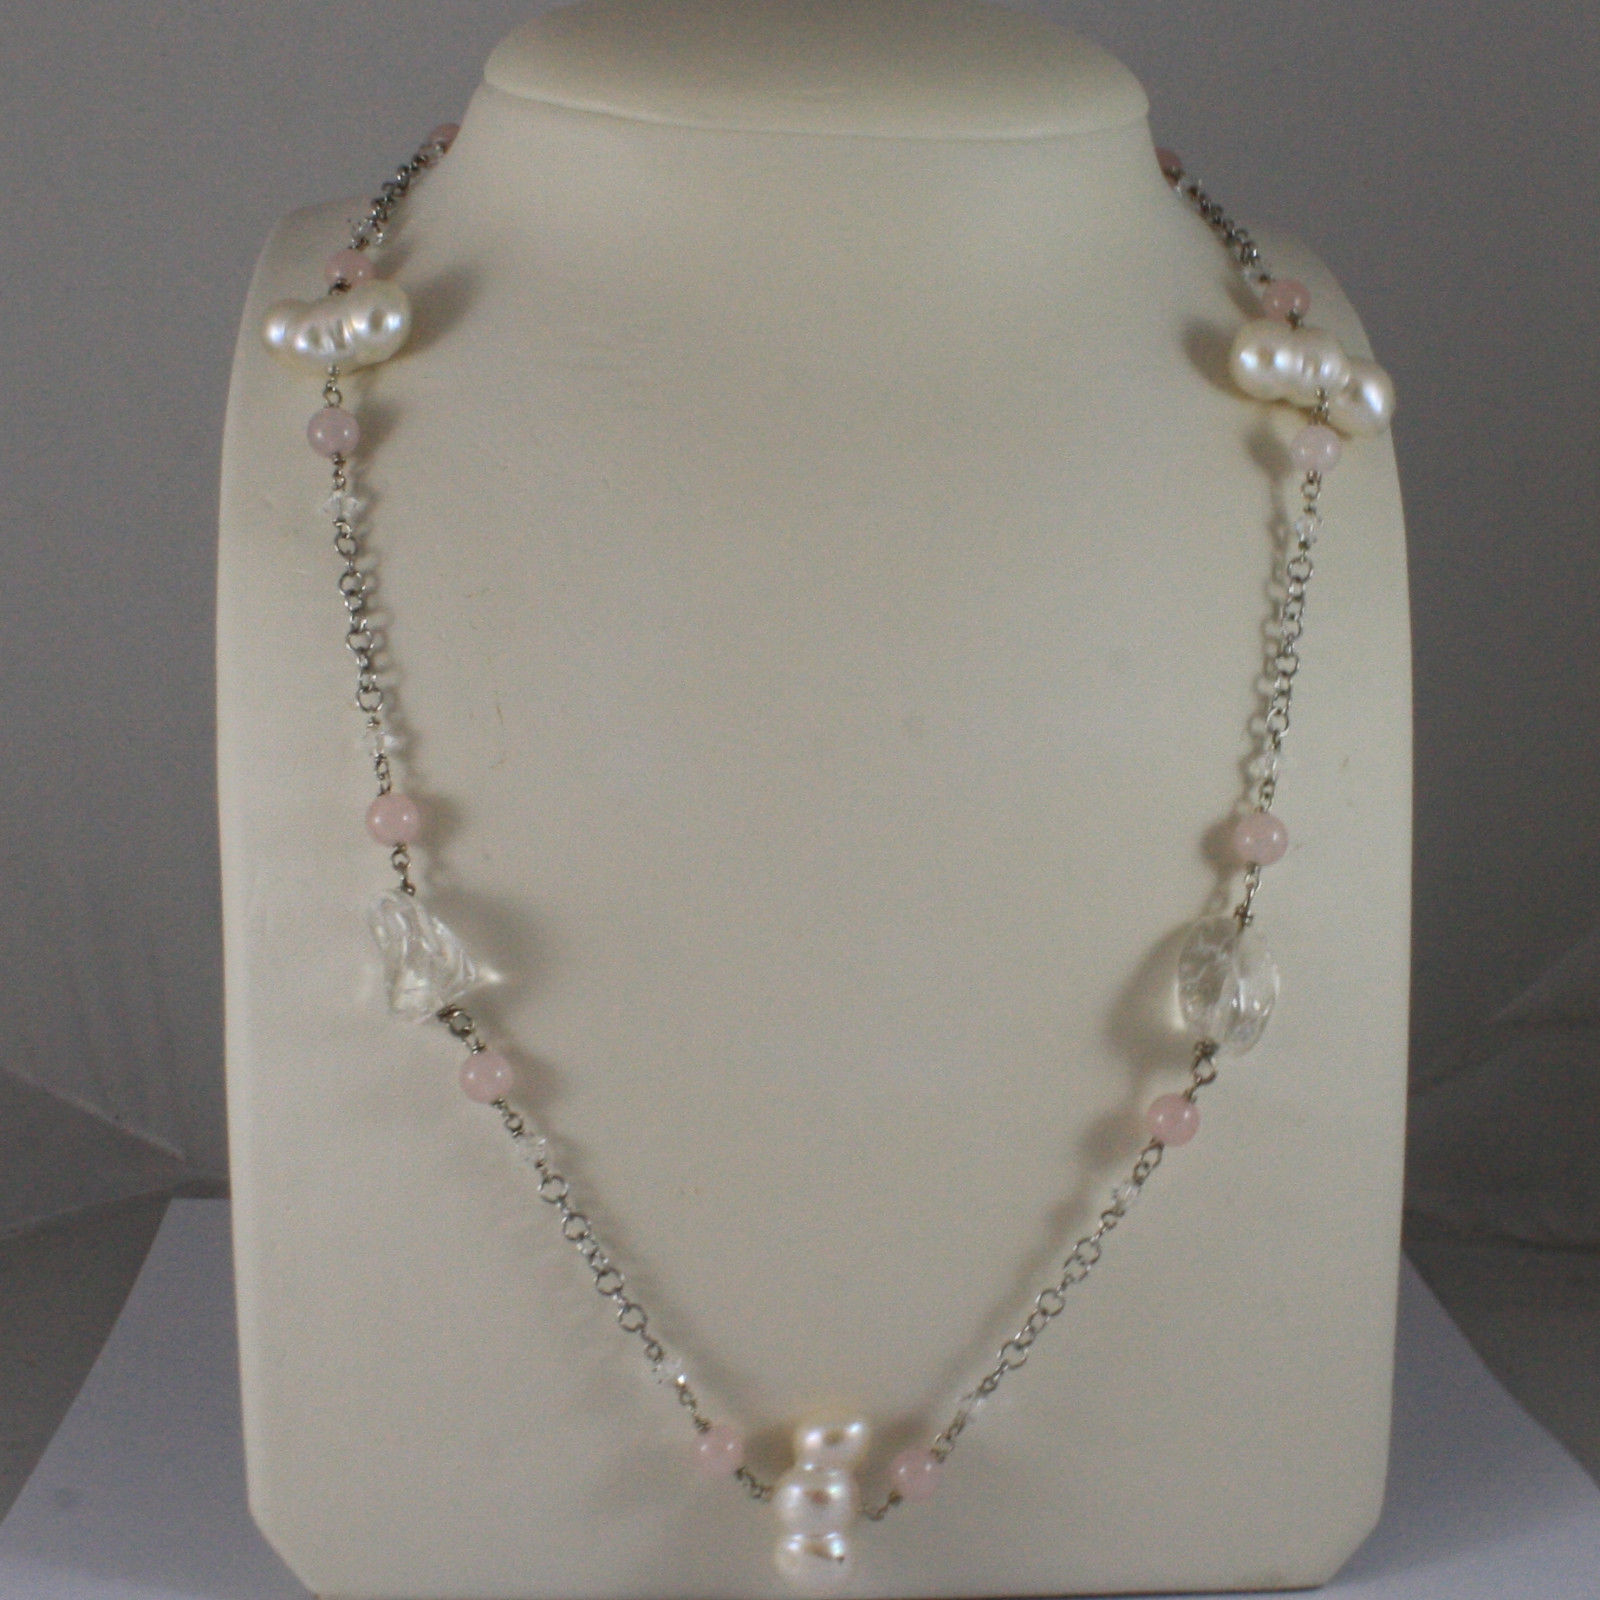 .925 SILVER RHODIUM NECKLACE WITH PINK QUARTZ, BAROQUE WHITE PEARLS AND CRYSTALS